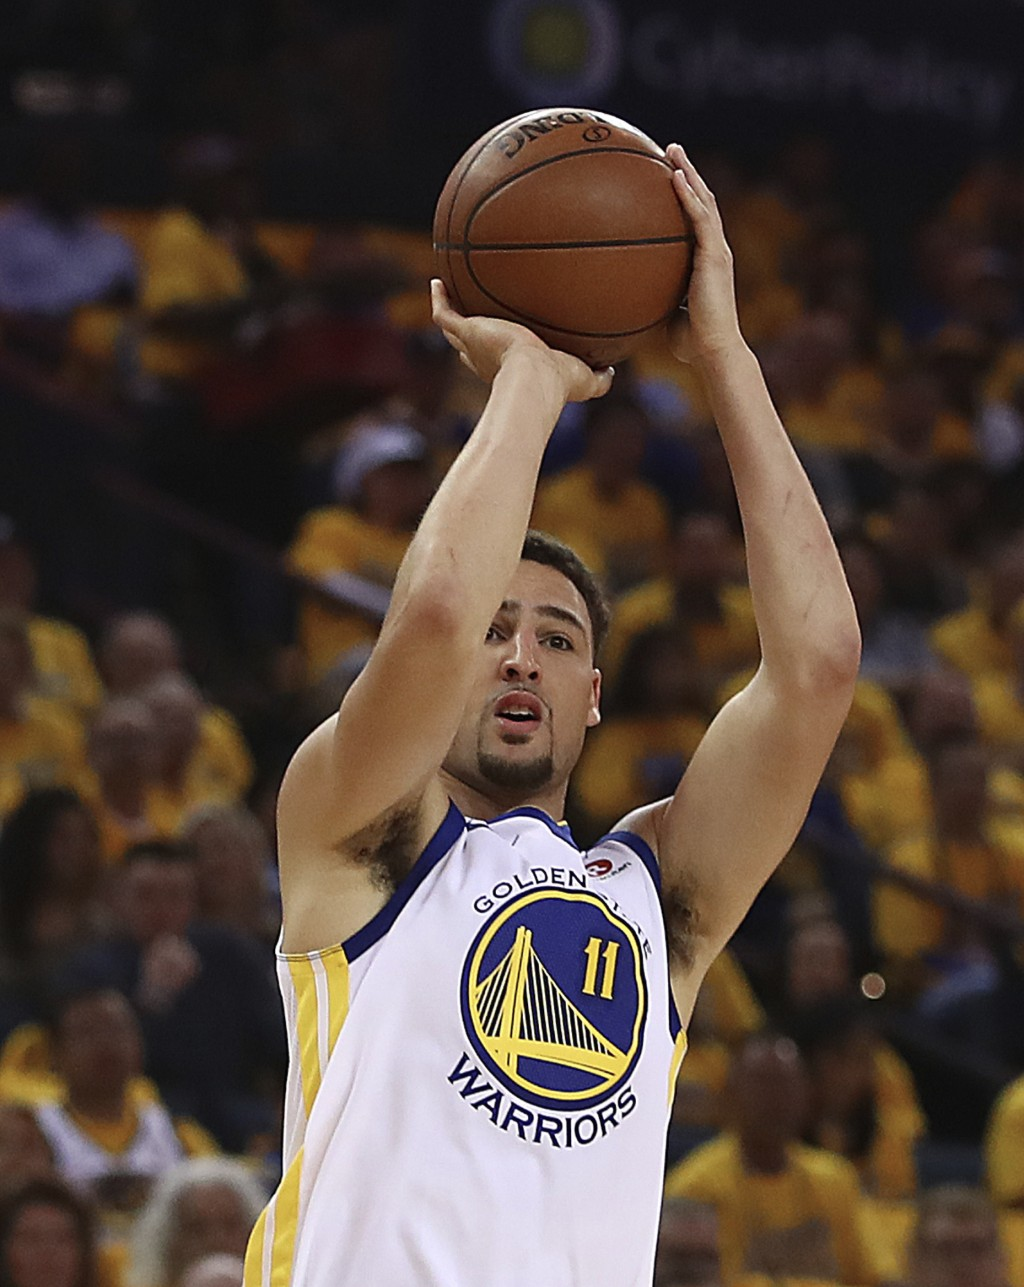 Golden State Warriors' Klay Thompson shoots against the San Antonio Spurs during the first half in Game 1 of a first-round NBA basketball playoff seri